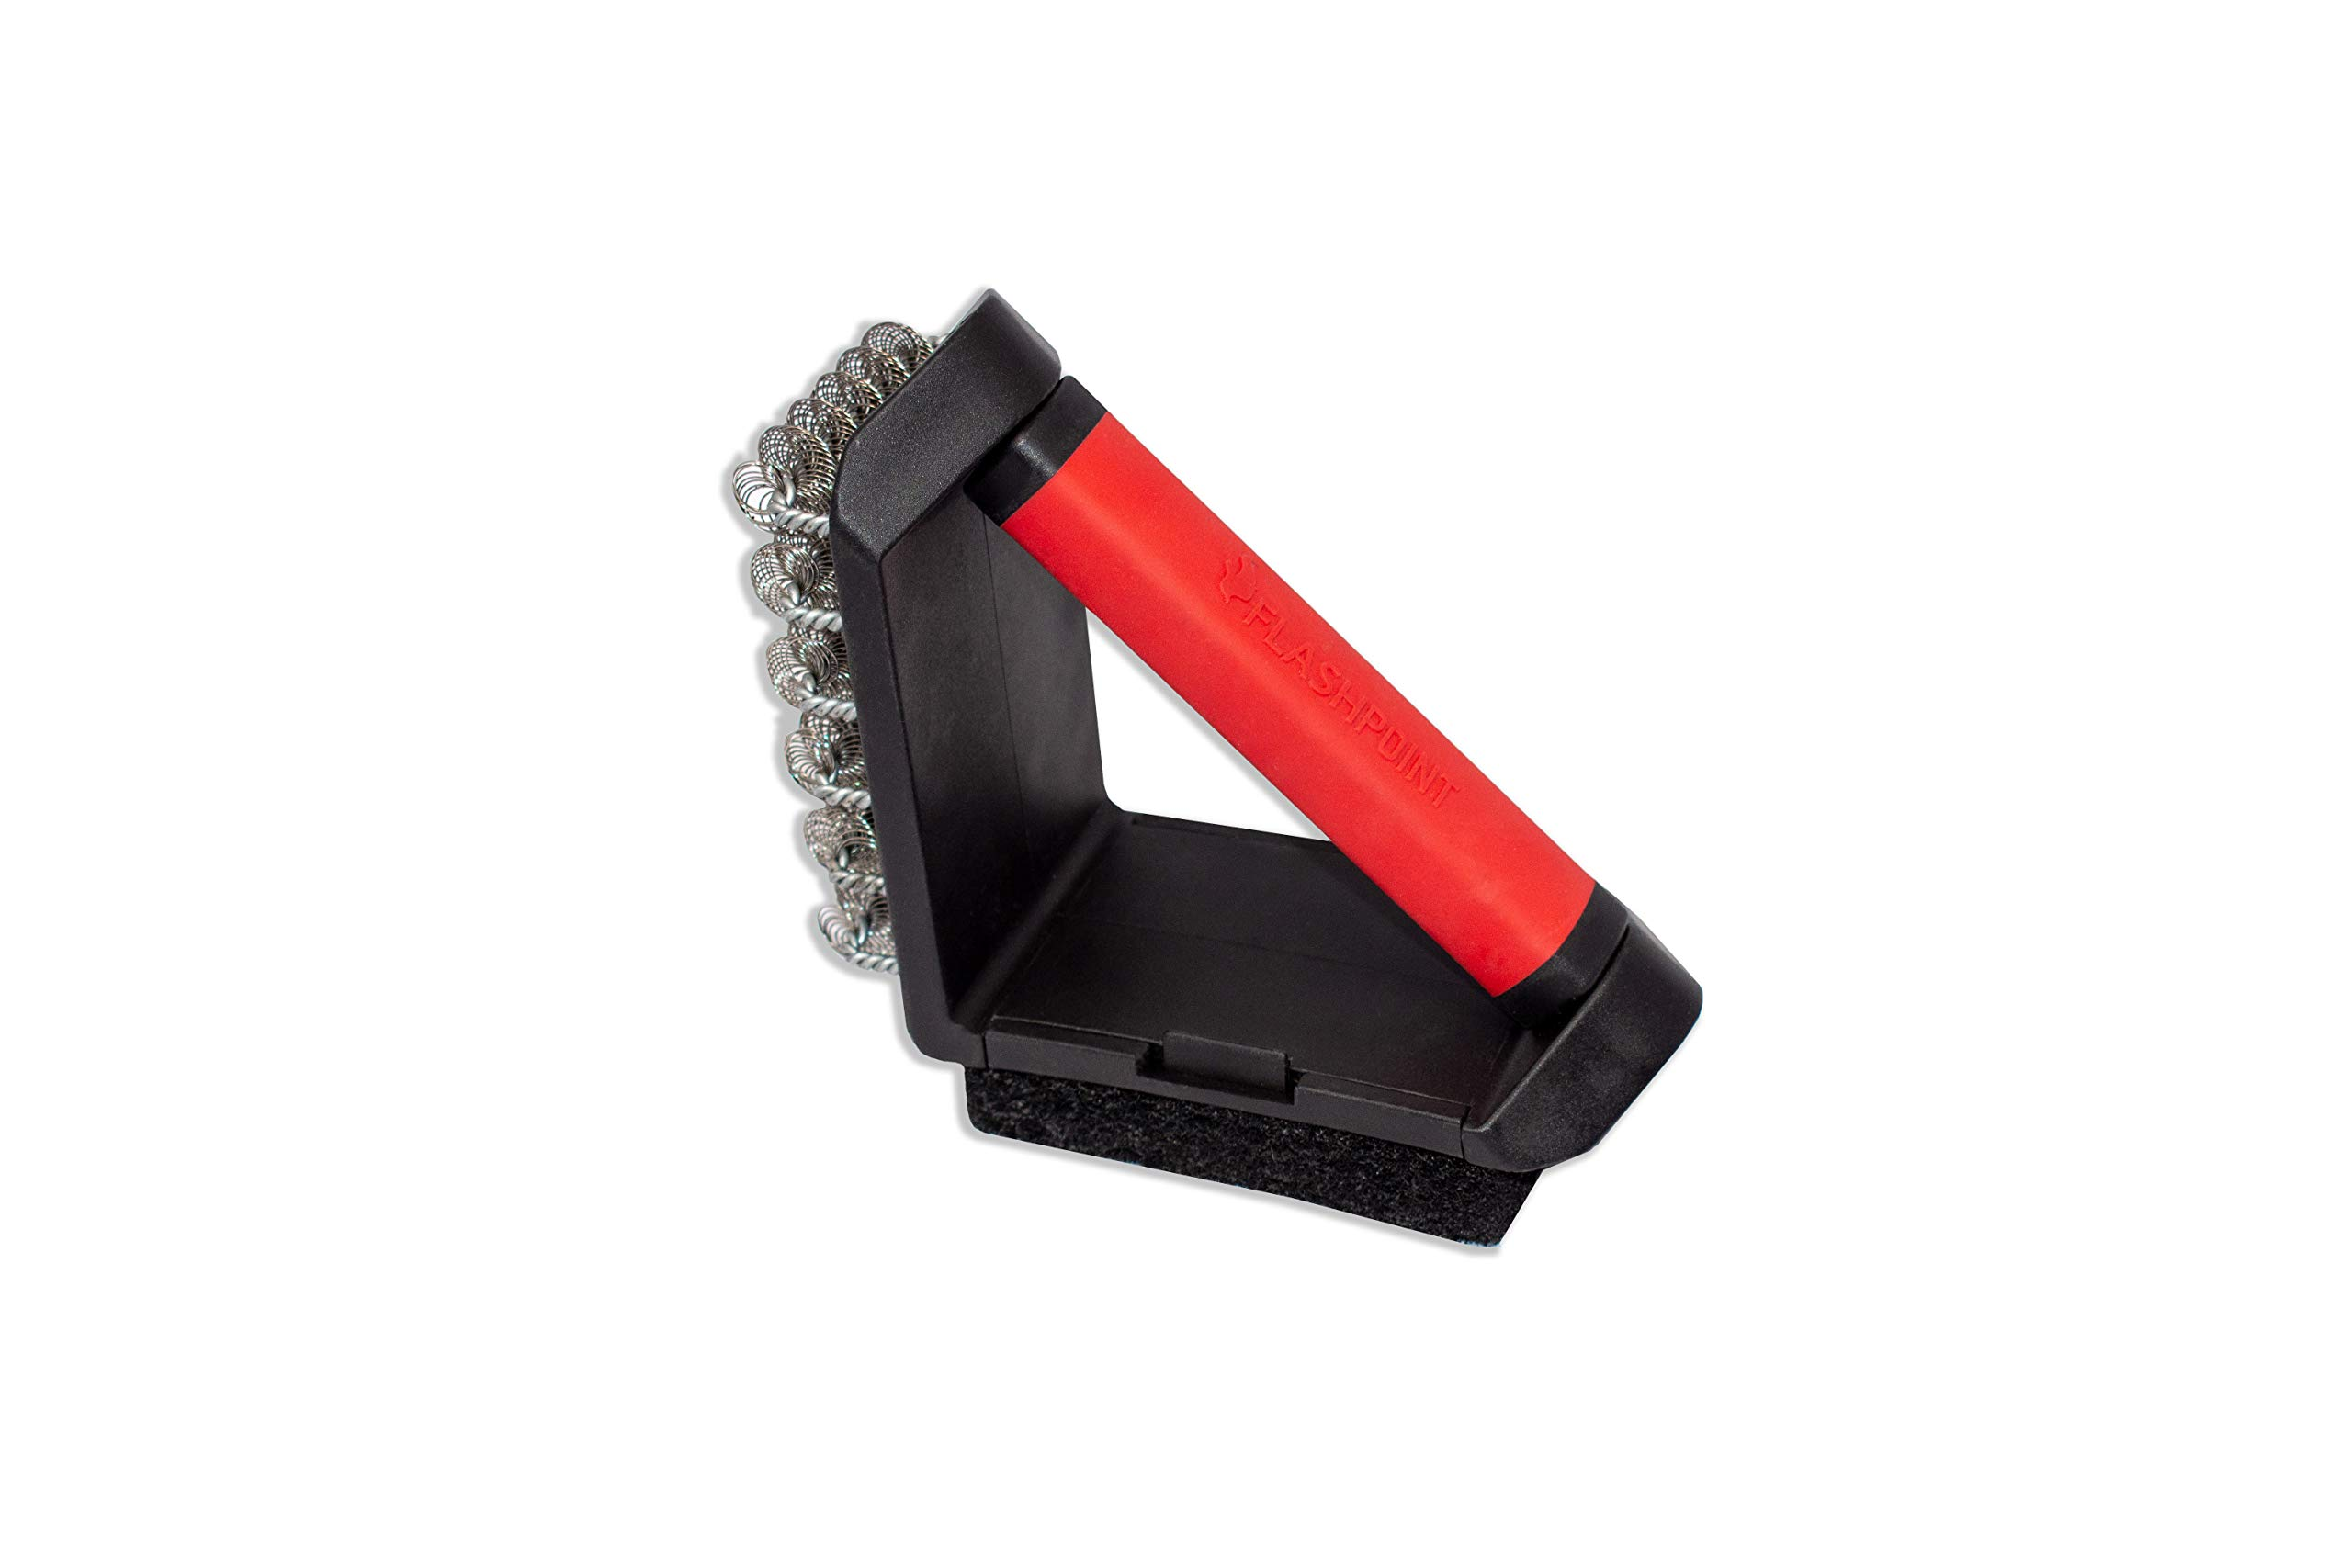 FLASHPOINT 8100-037 2-Way Cleaning Grill Brush, Black